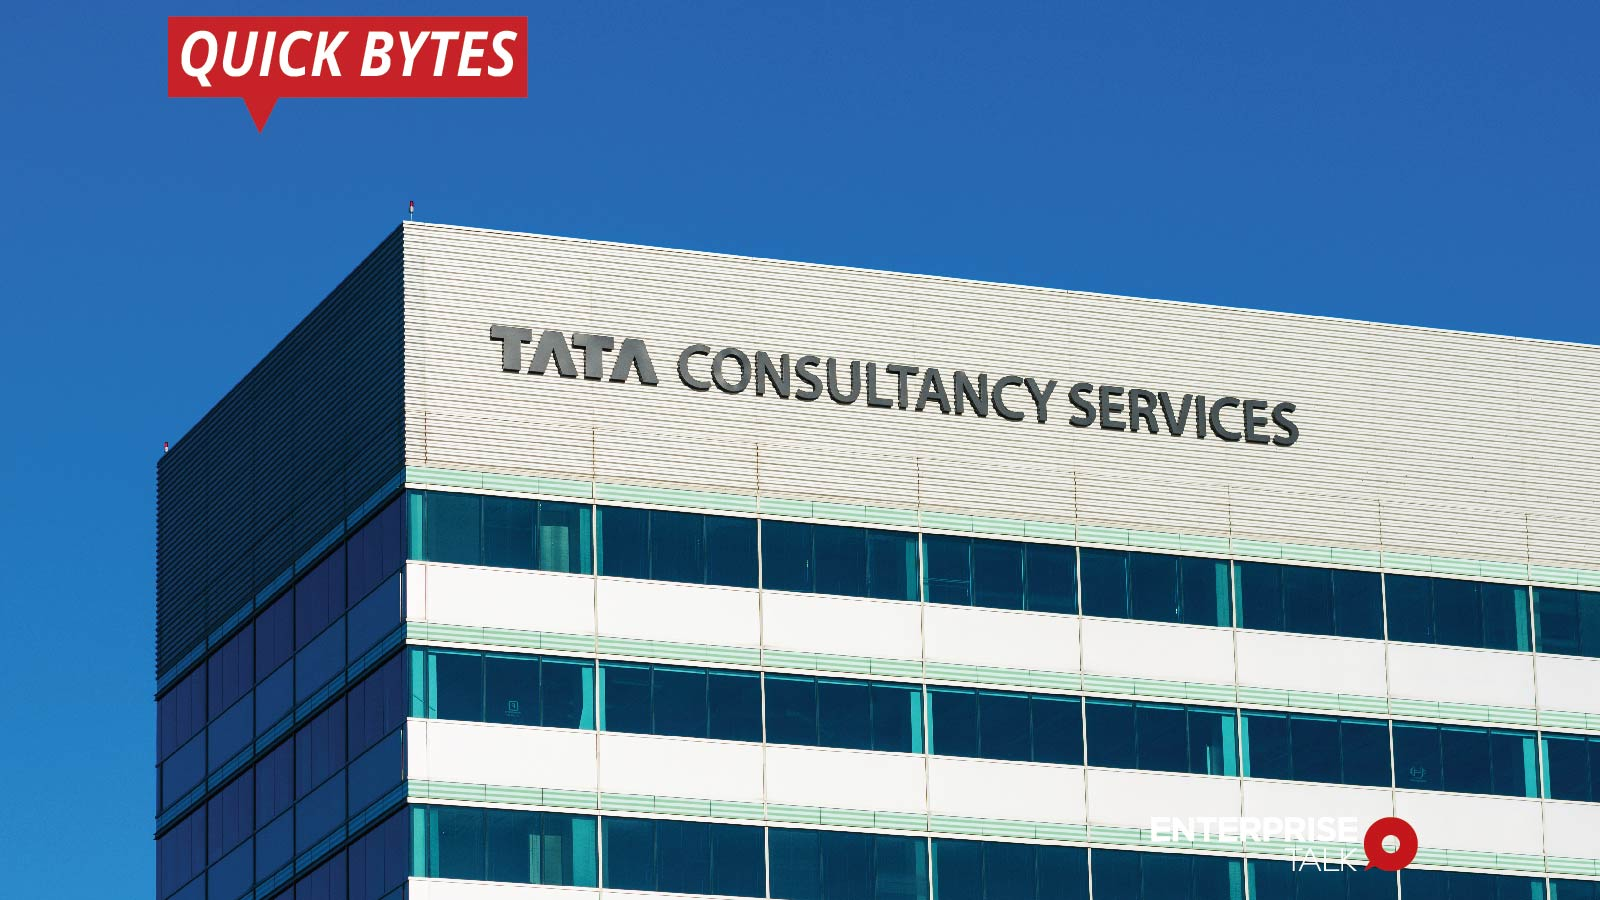 TCS Announces Strategic 5G Deal with Three UK